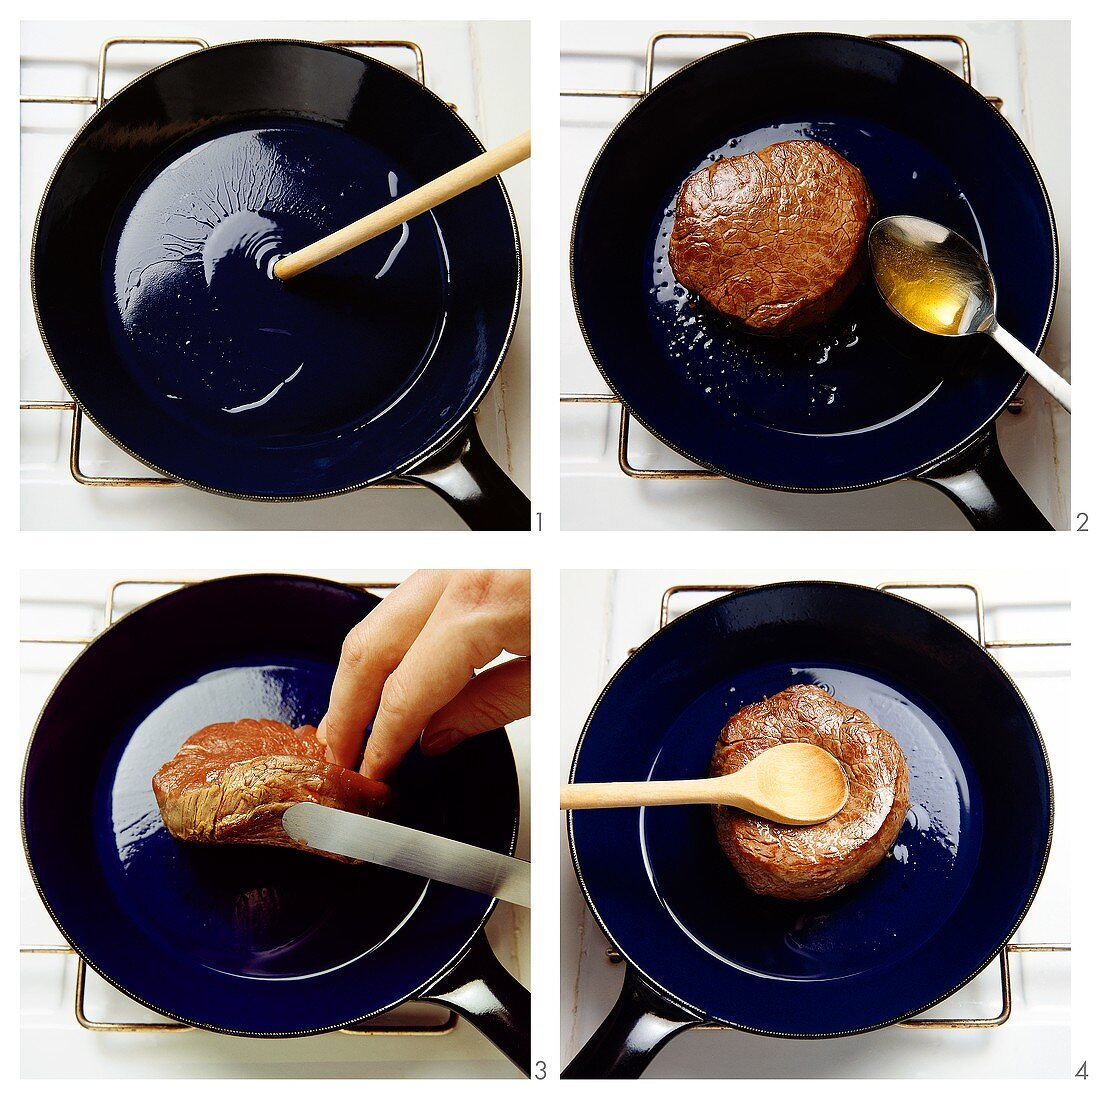 Testing the Heat of a Frying Pan